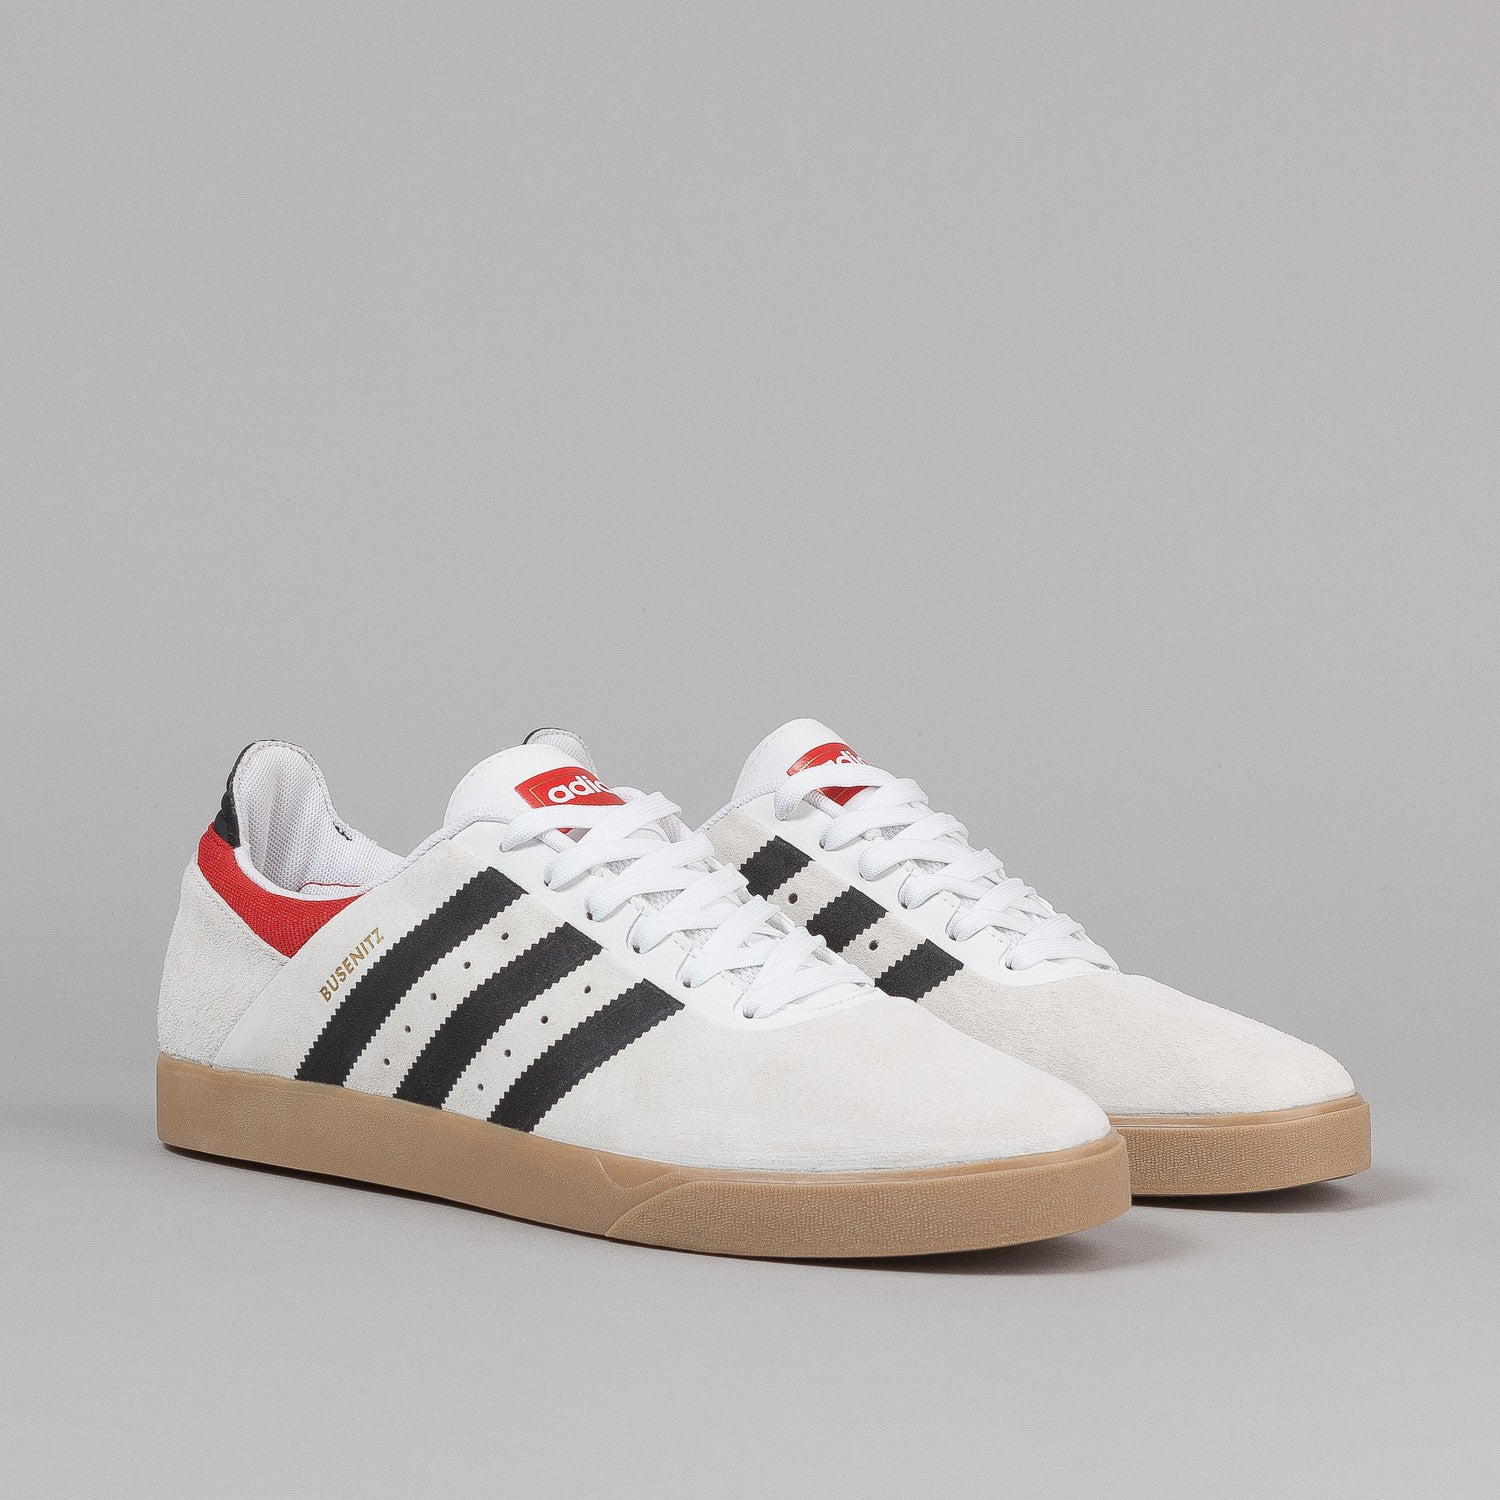 Adidas Busenitz Adv Shoes - Running White / Black / Brick